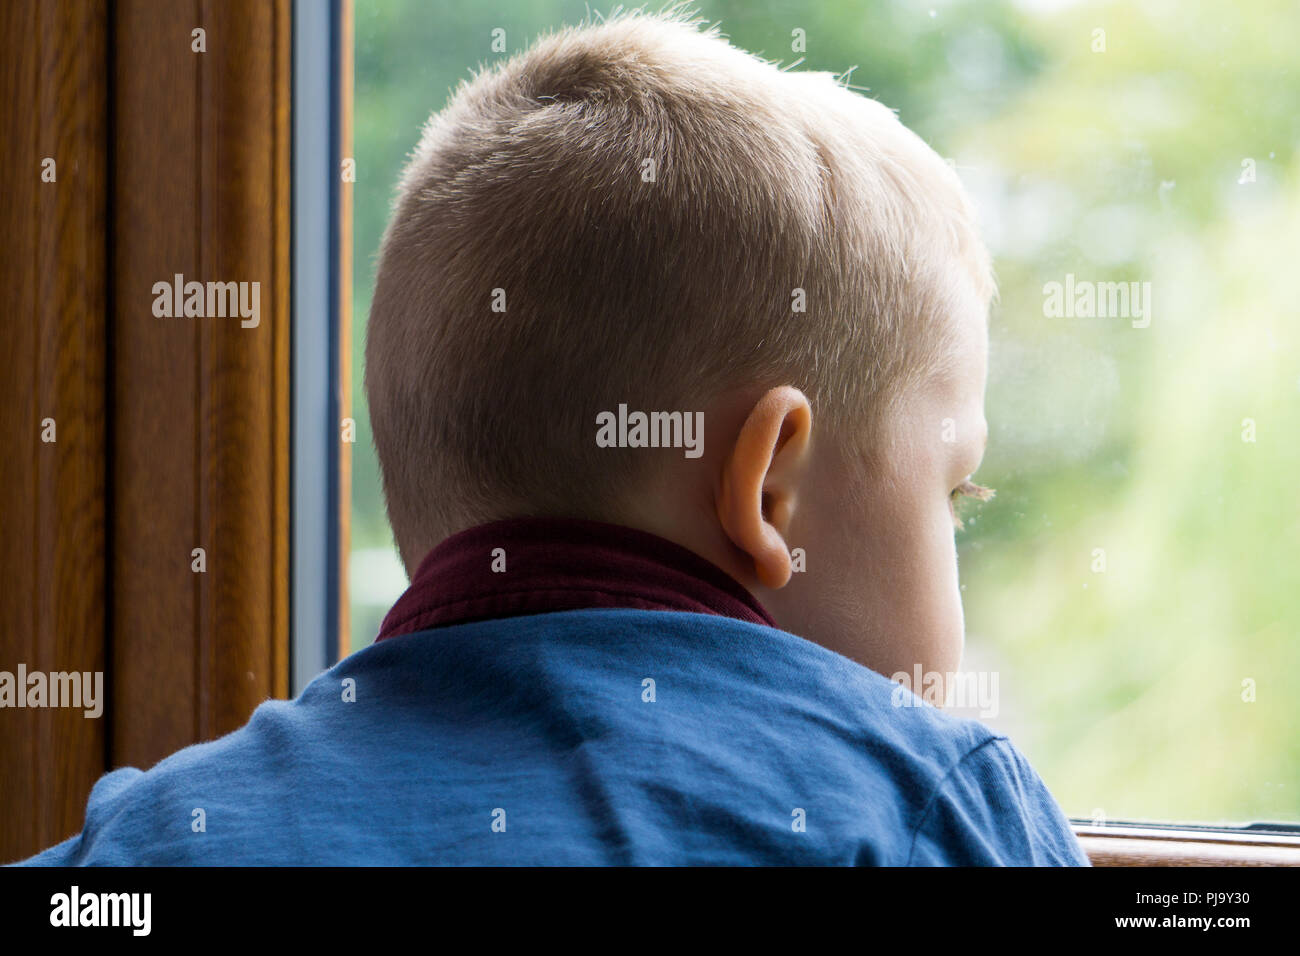 Small boy looking out of a window onto a garden - Stock Image